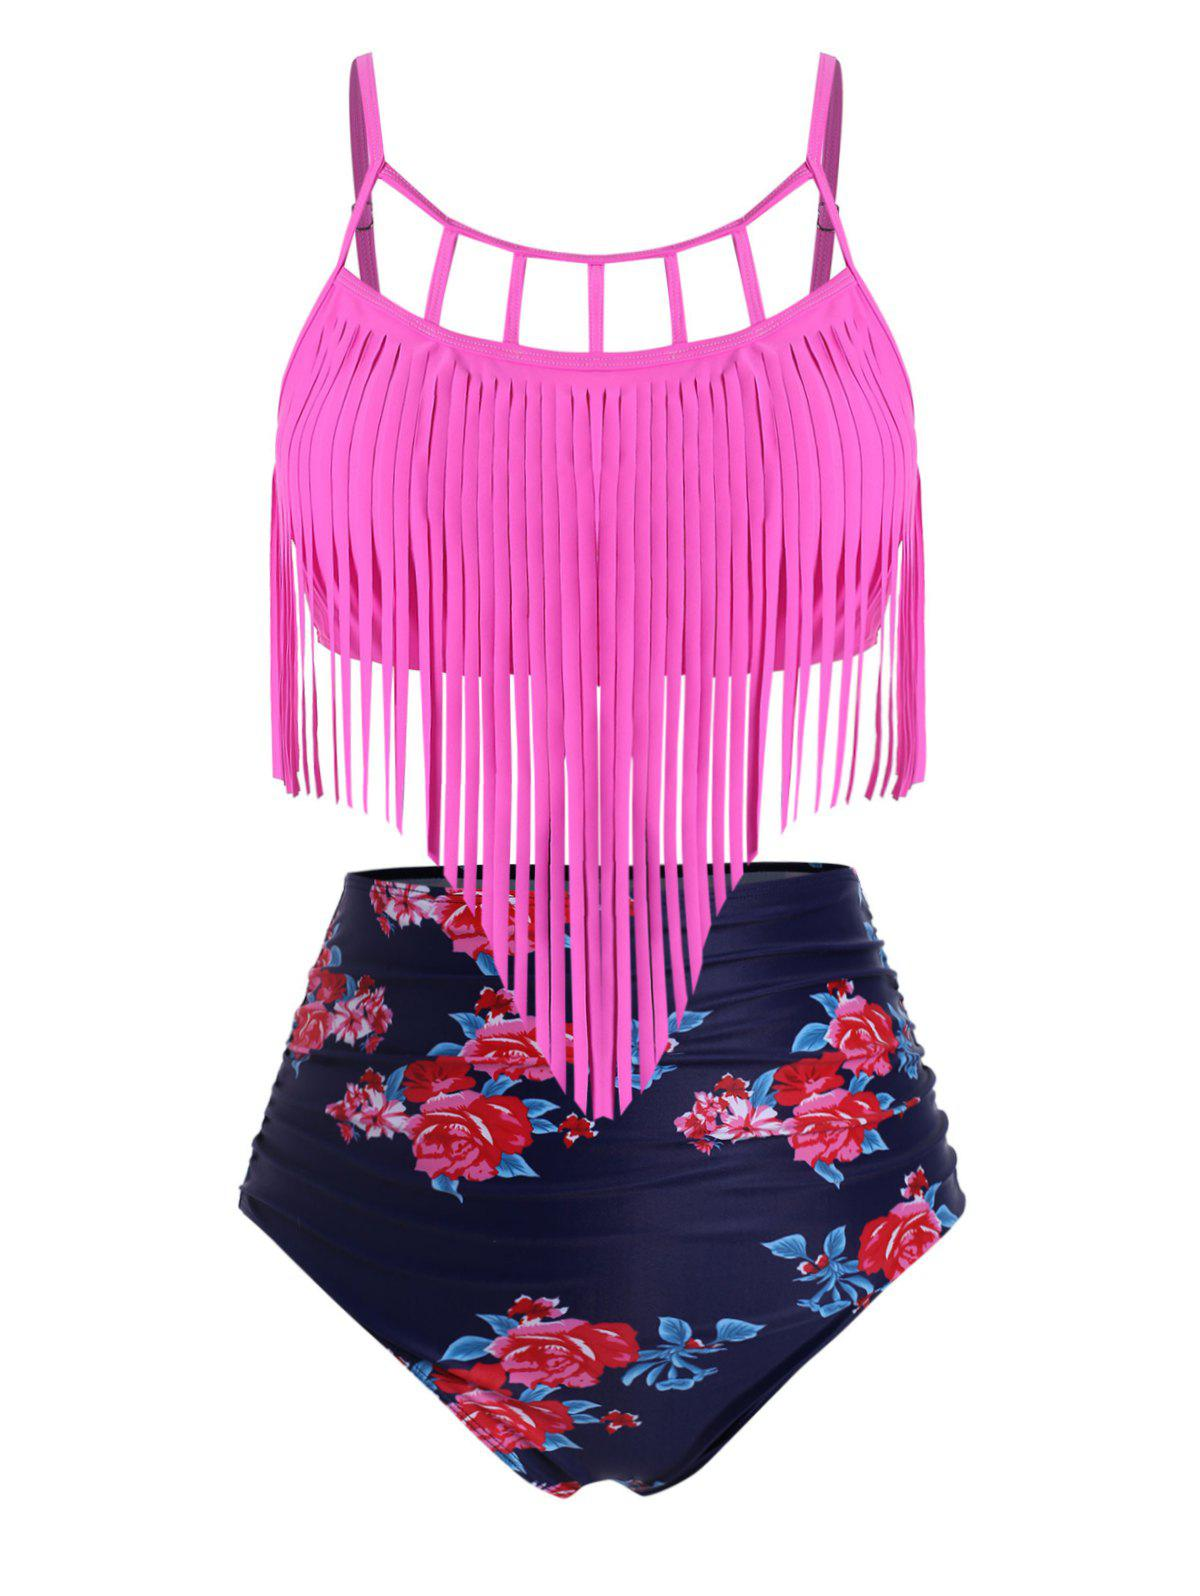 Fringed Floral Ruched High Waisted Plus Size Tankini Swimsuit - ROSE RED 2X